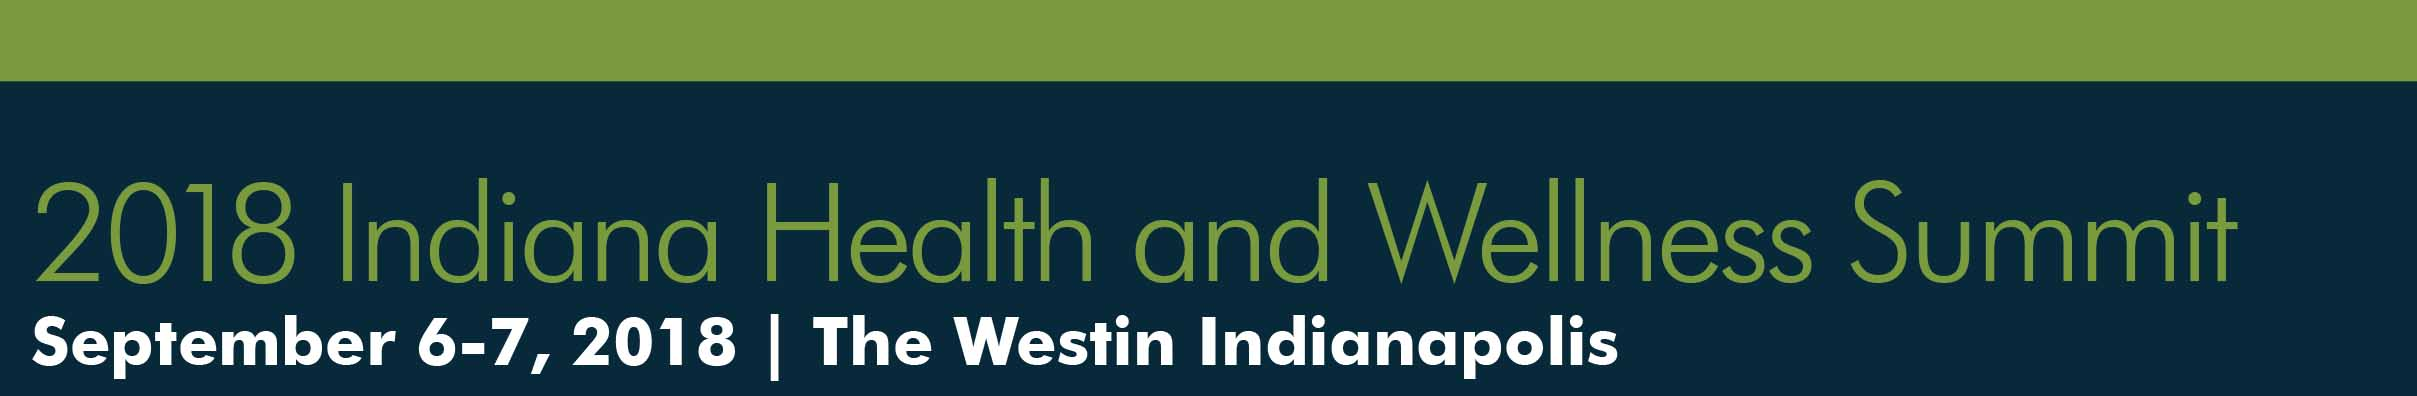 Indiana Health and Wellness Summit Mobile Retina Logo